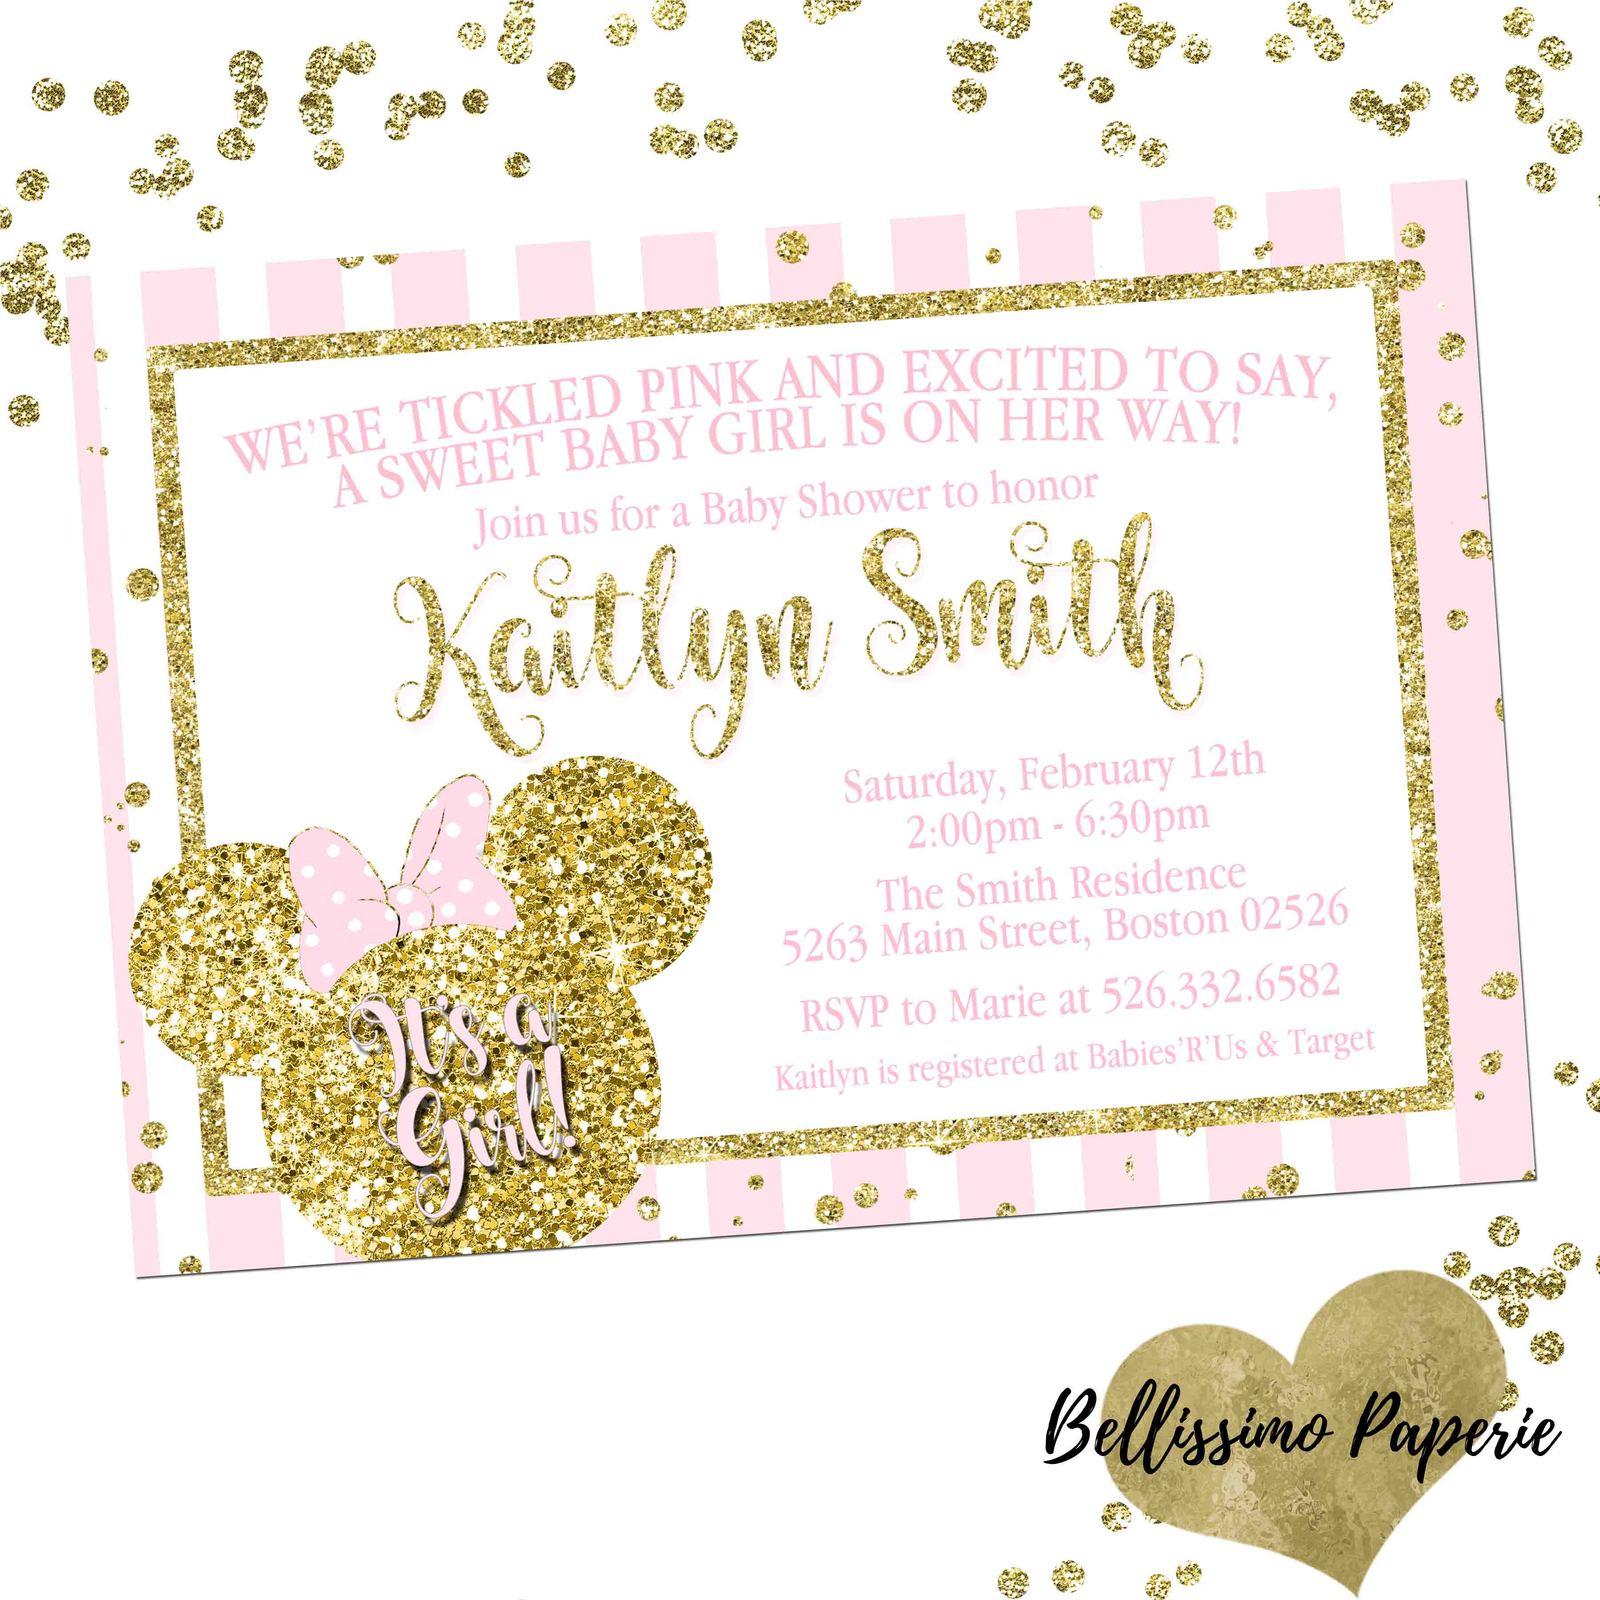 navy template blush pink new of dots invitations gold shower and invitation bubbles girl printable luxury baby inspirational